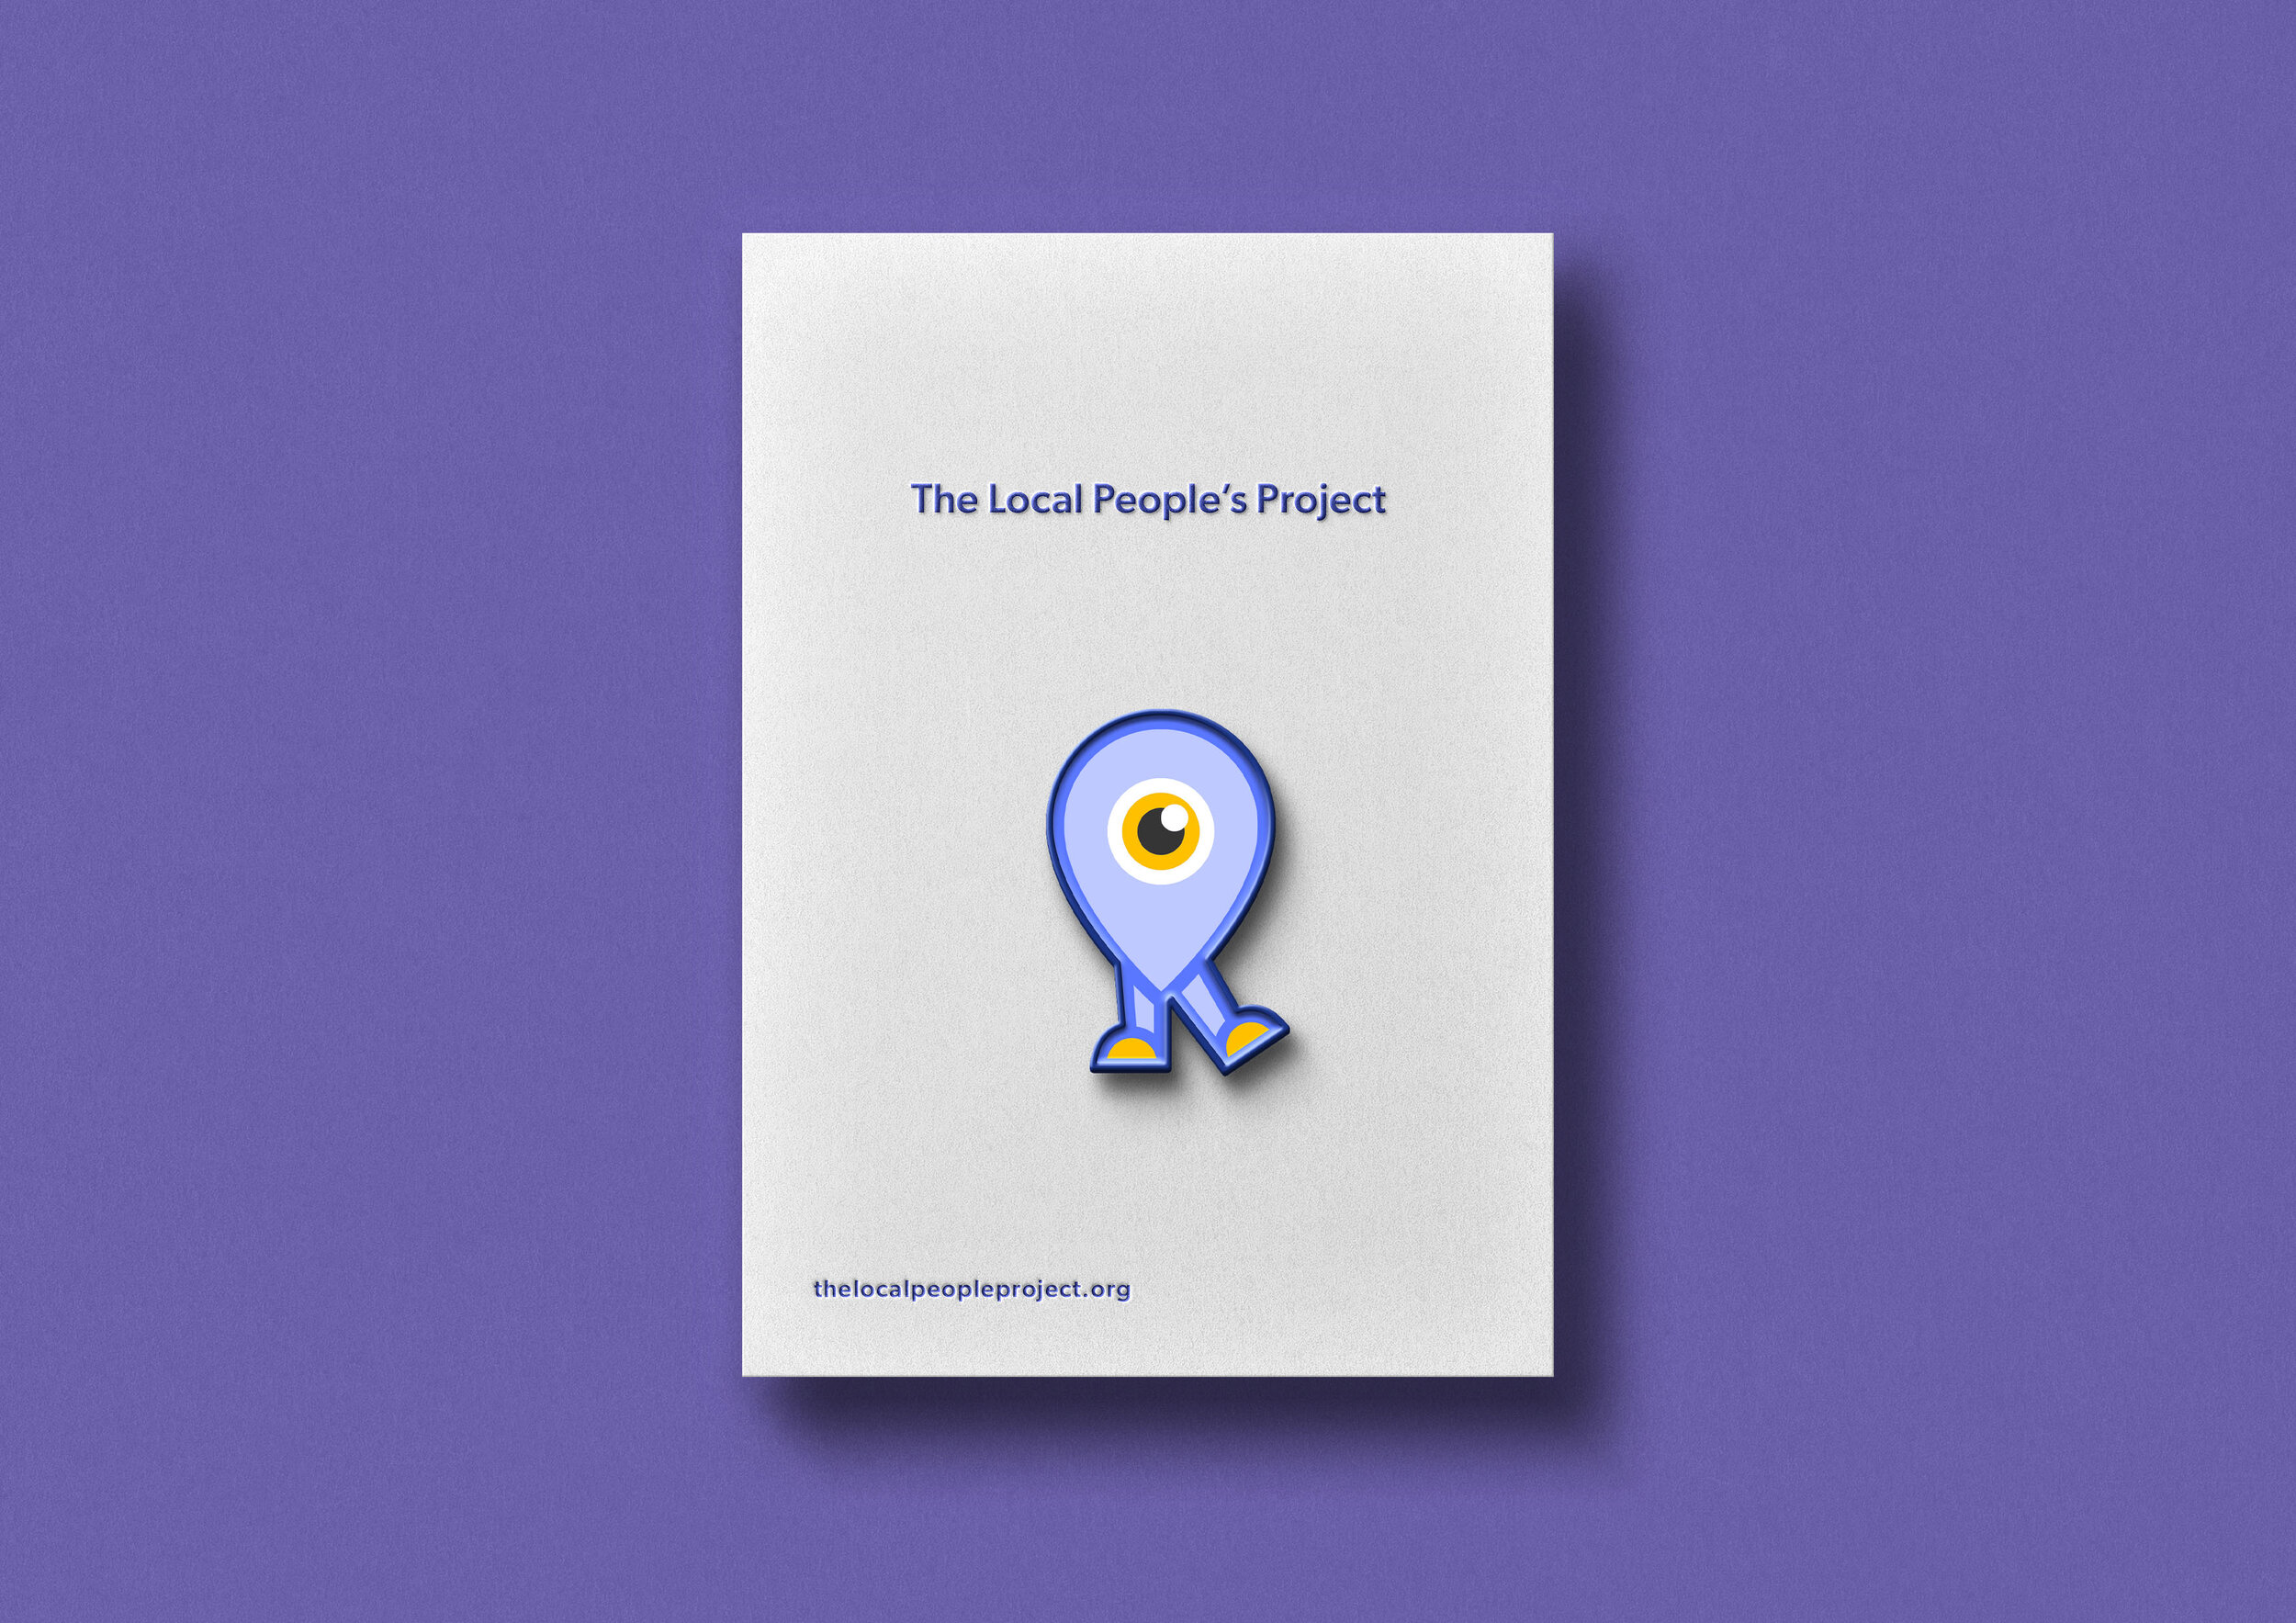 The Local People's Project for the City of Miami